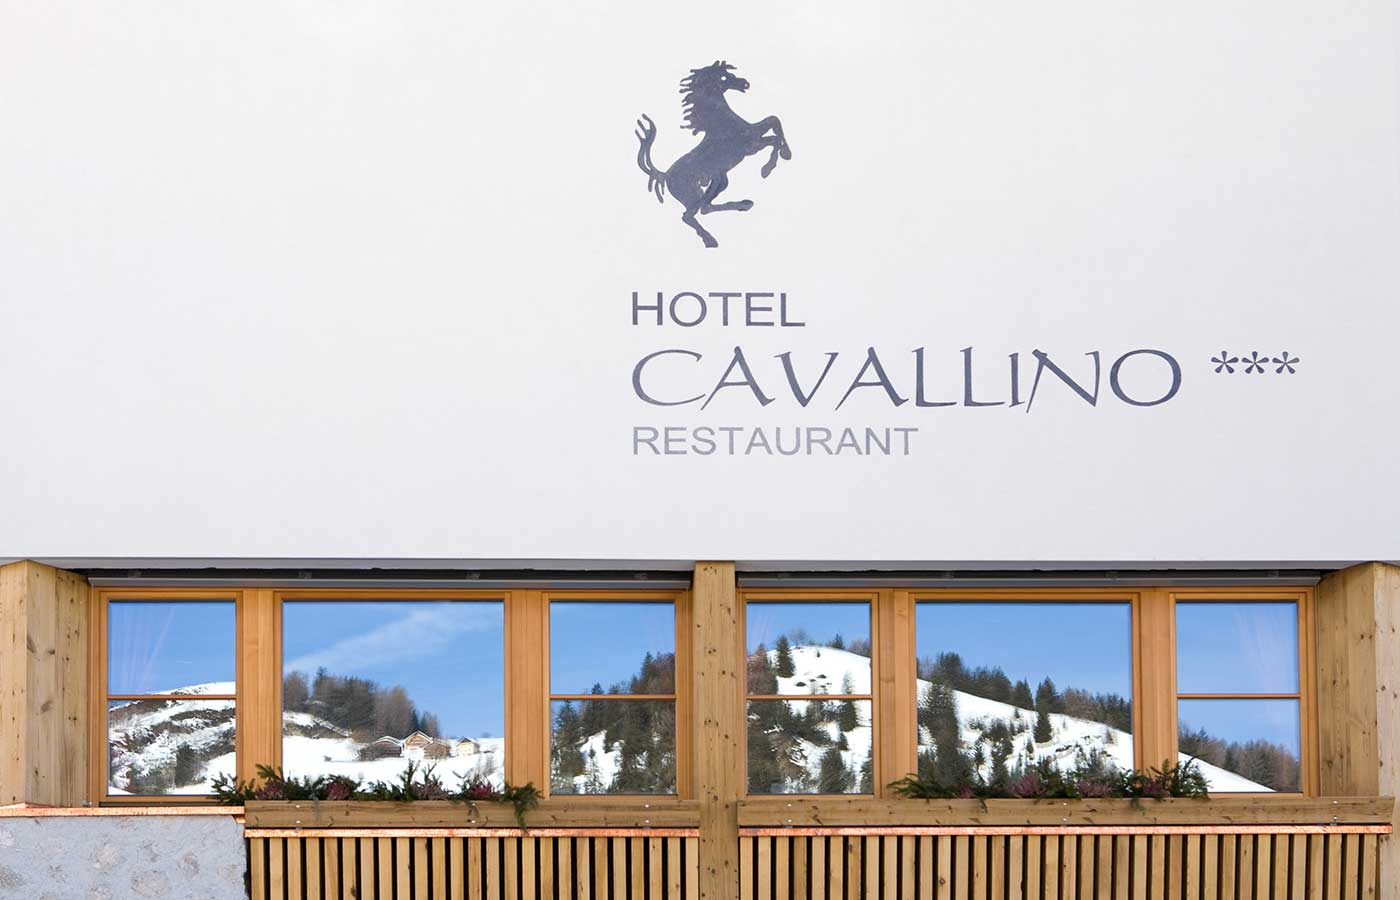 Writing 'Hotel Cavallino' at the front